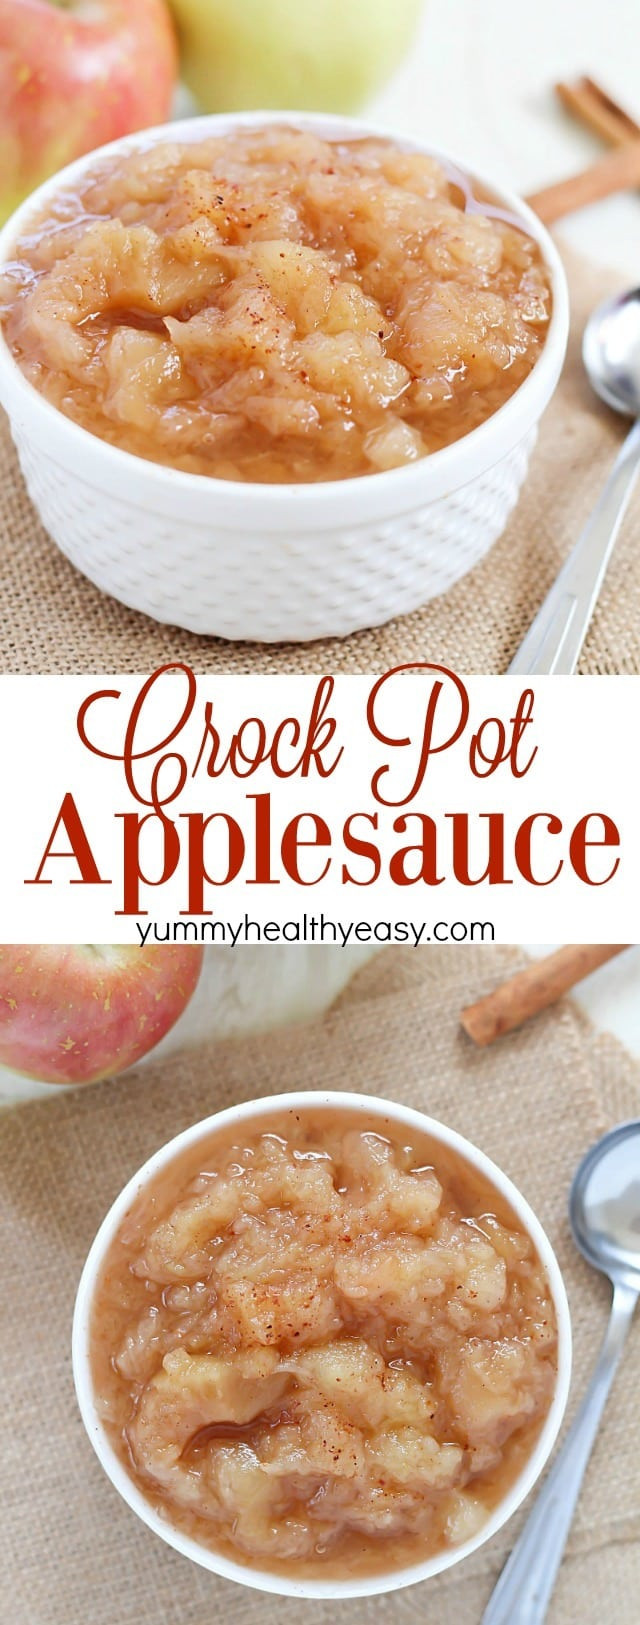 Easy Applesauce Recipe  Homemade Crock Pot Applesauce Yummy Healthy Easy